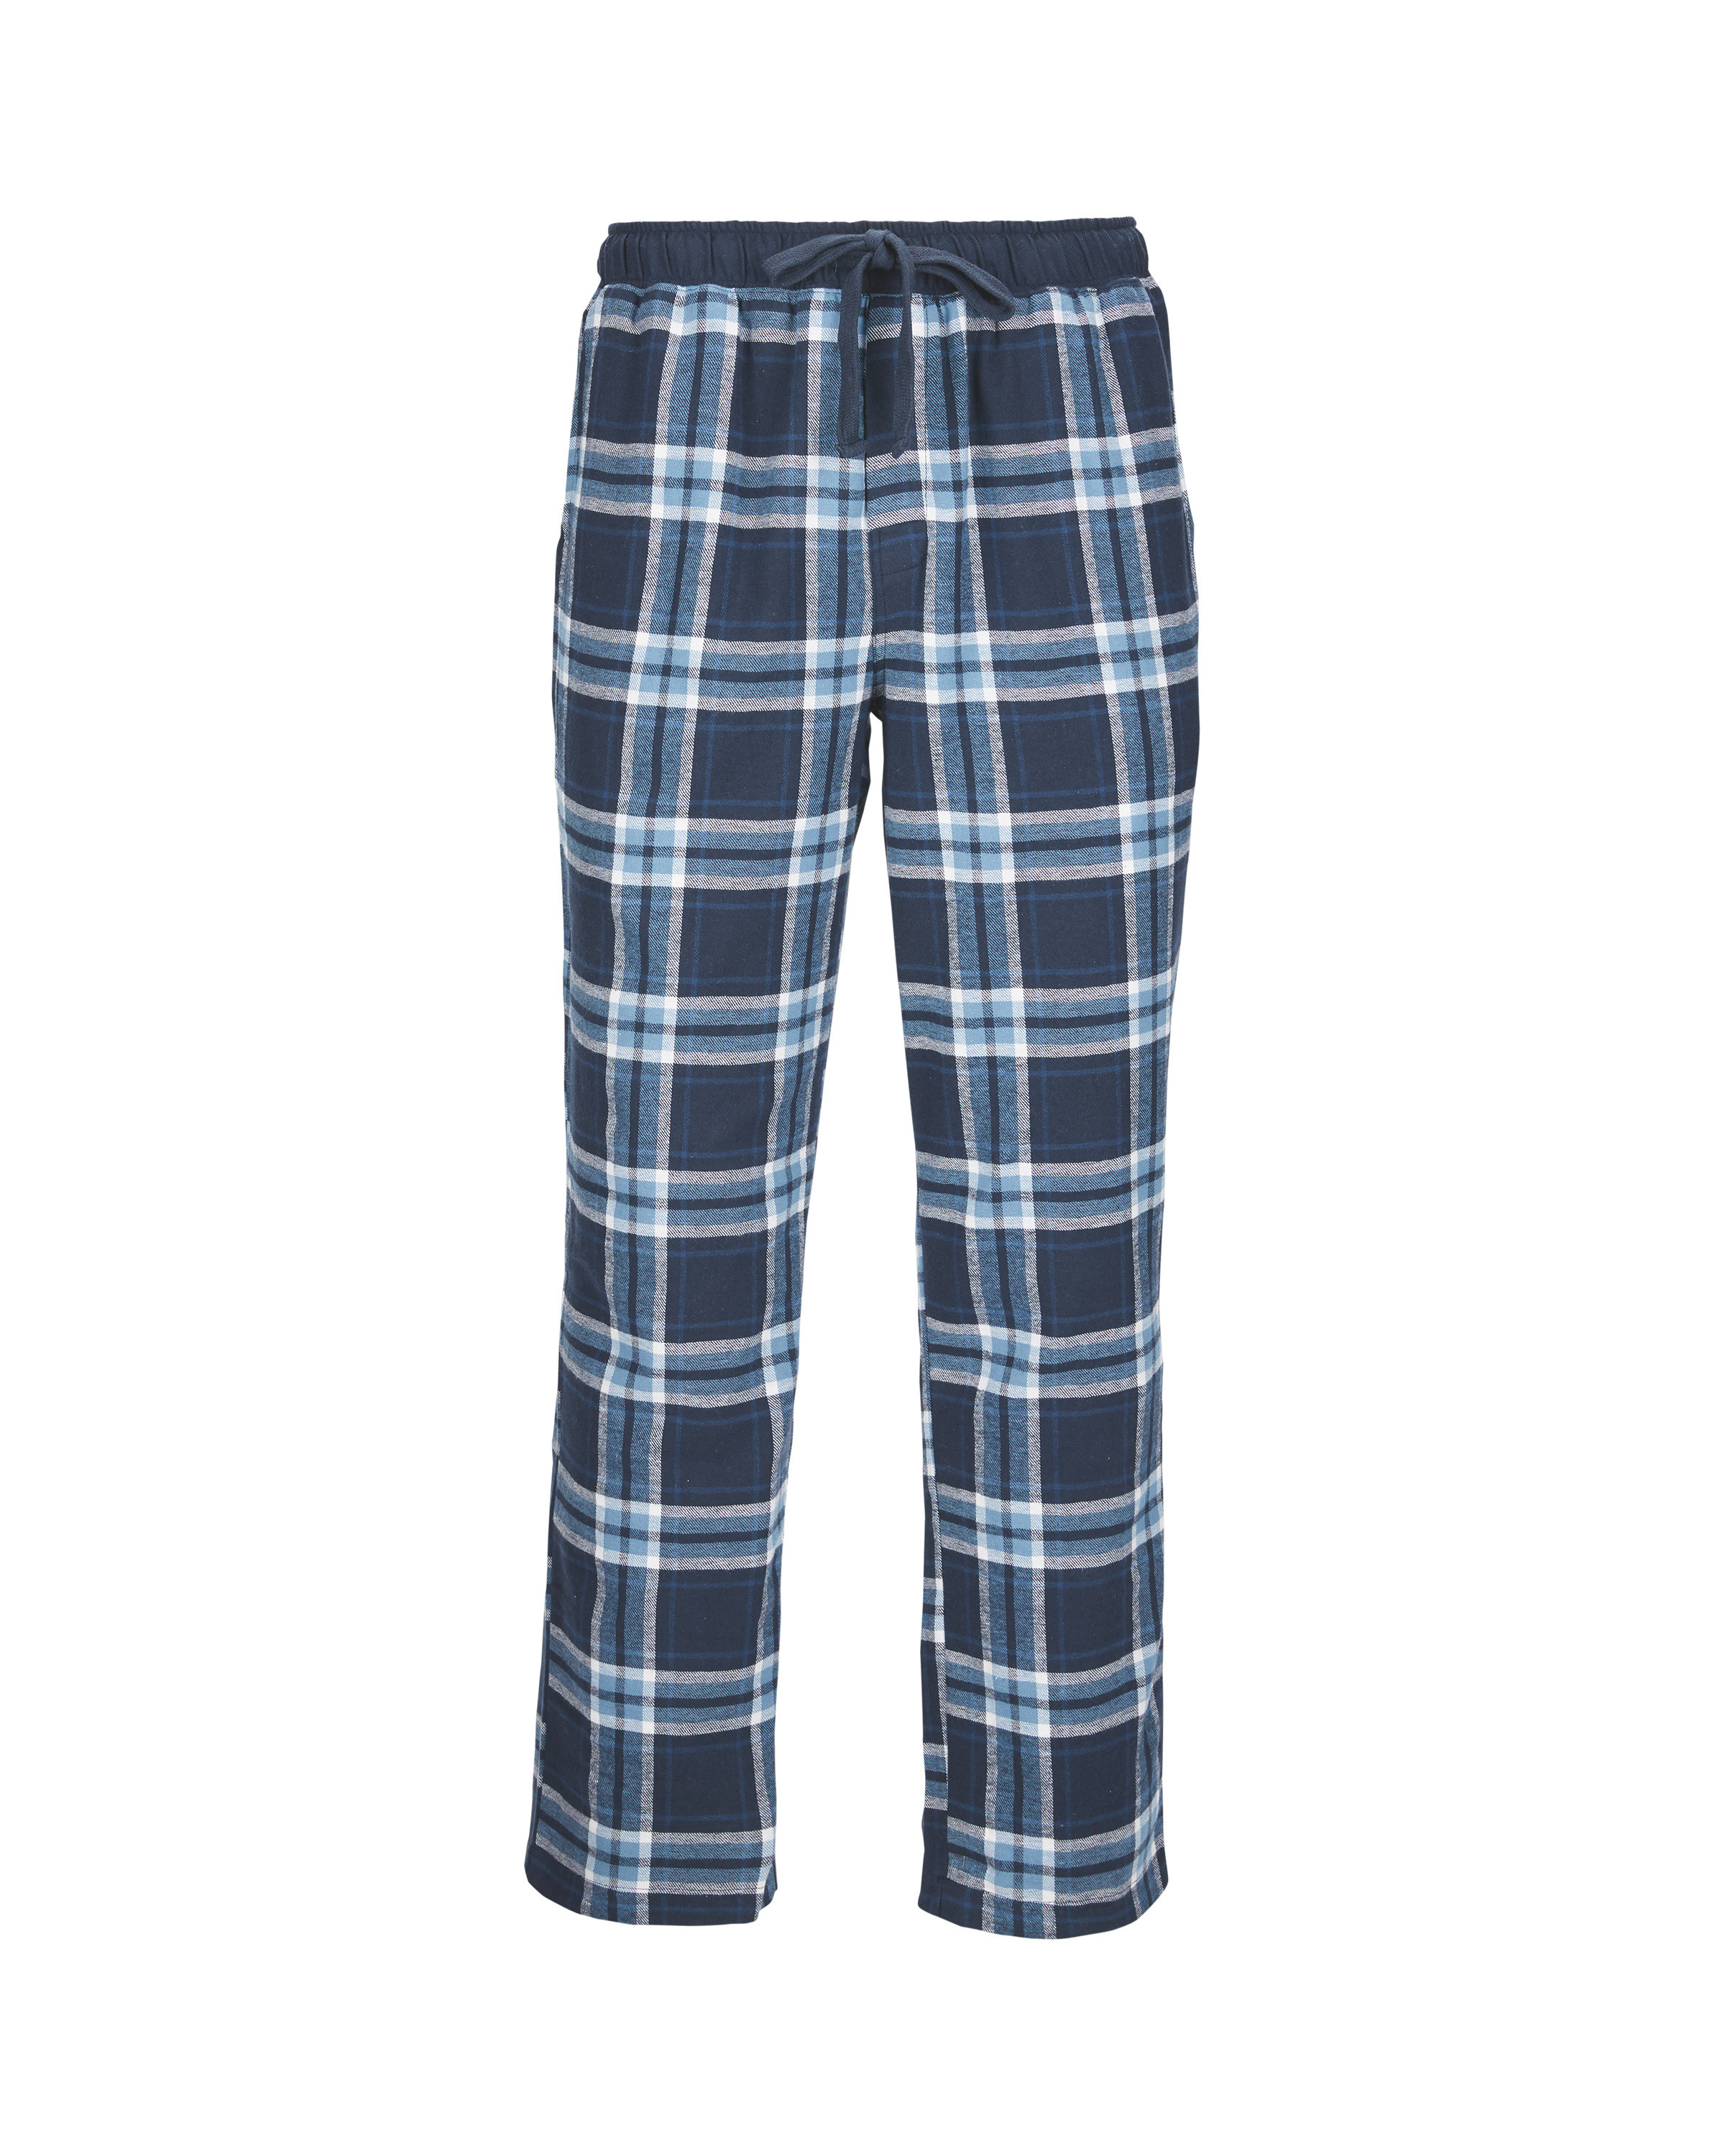 97a37bbe0b52a Men's Flannel Lounge Pants Navy/Blue - ALDI UK